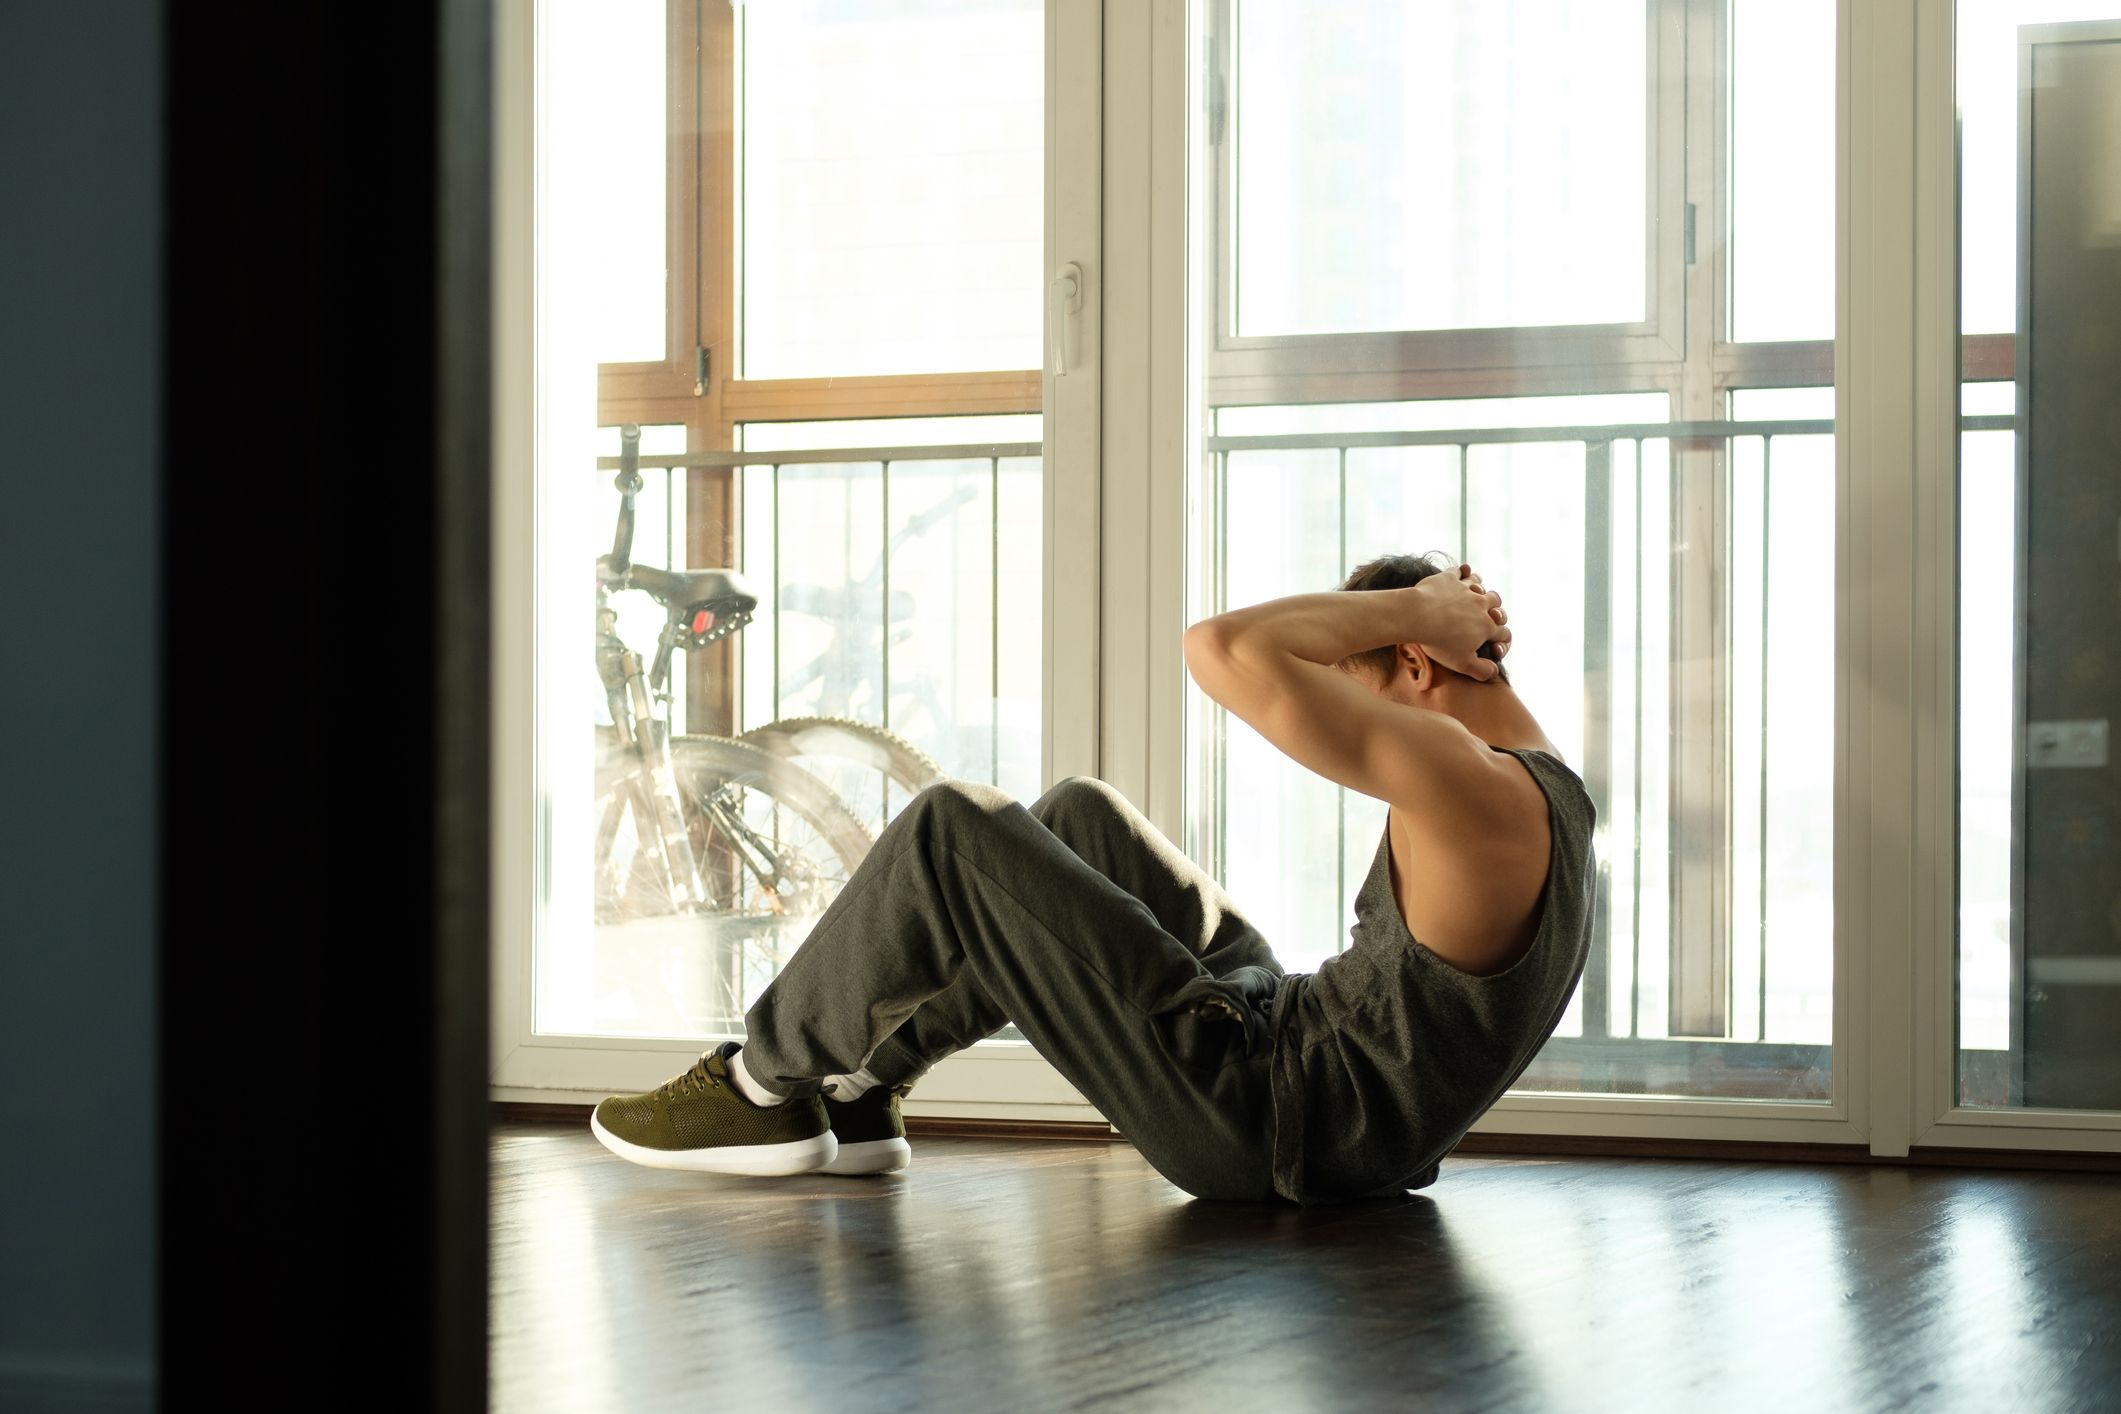 guy-doing-exercises-at-home-royalty-free-image-1584620553